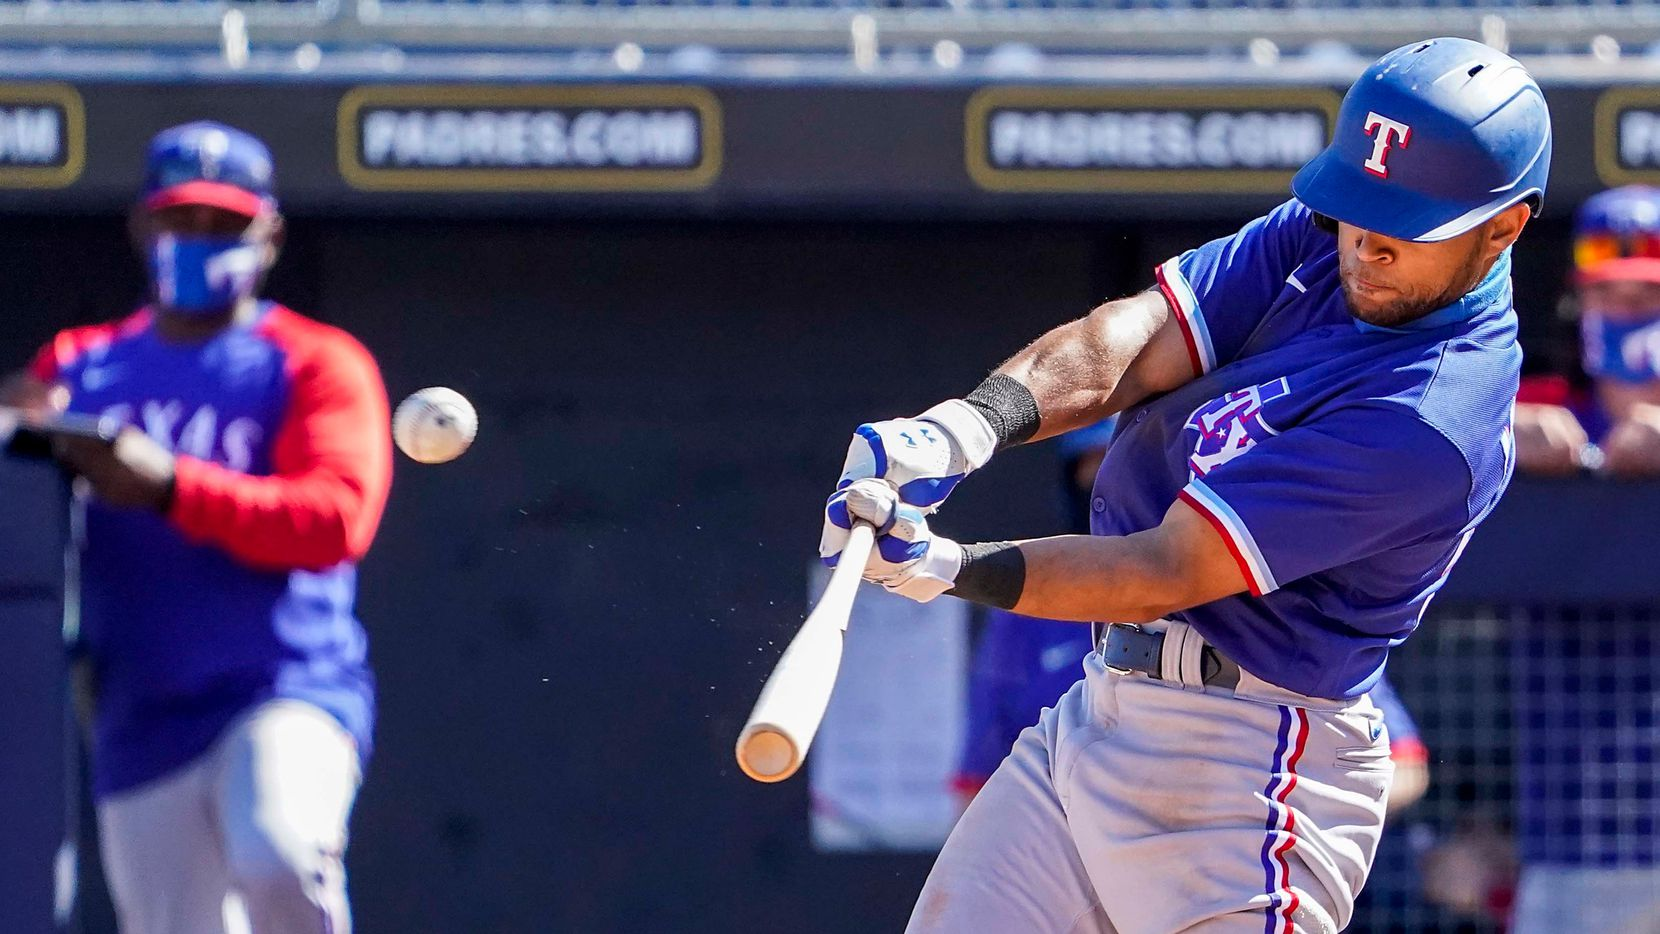 Texas Rangers outfielder Jason Martin hits a solo home run during the fifth inning of a spring training game against the Seattle Mariners at Peoria Sports Complex on Wednesday, March 10, 2021, in Peoria, Ariz.